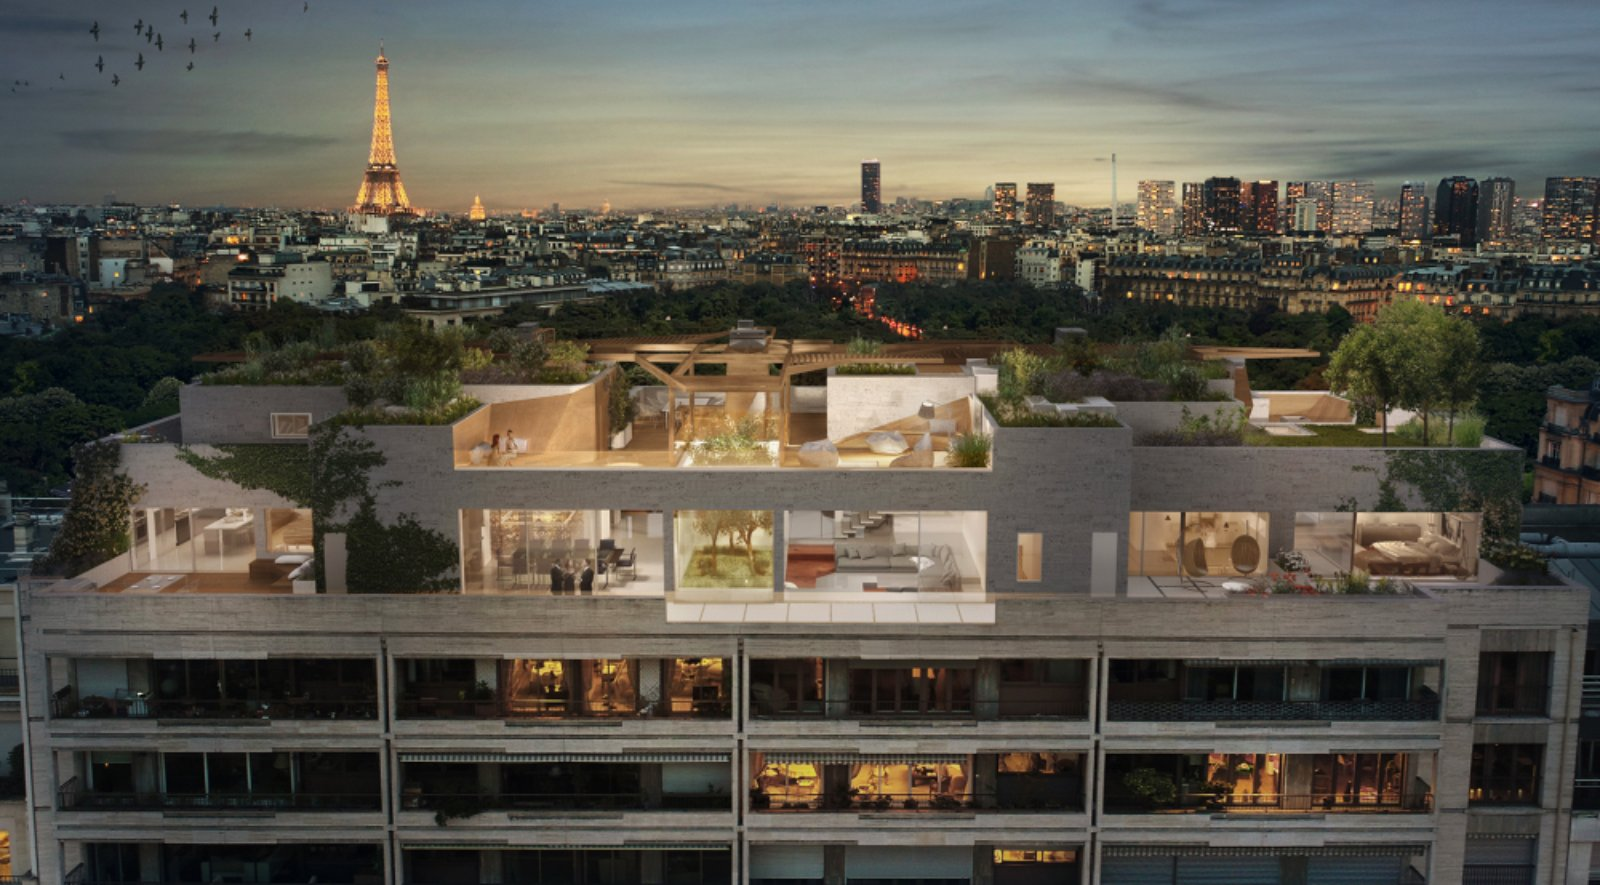 La For 234 T Urbaine By Matteo Cainer Architects